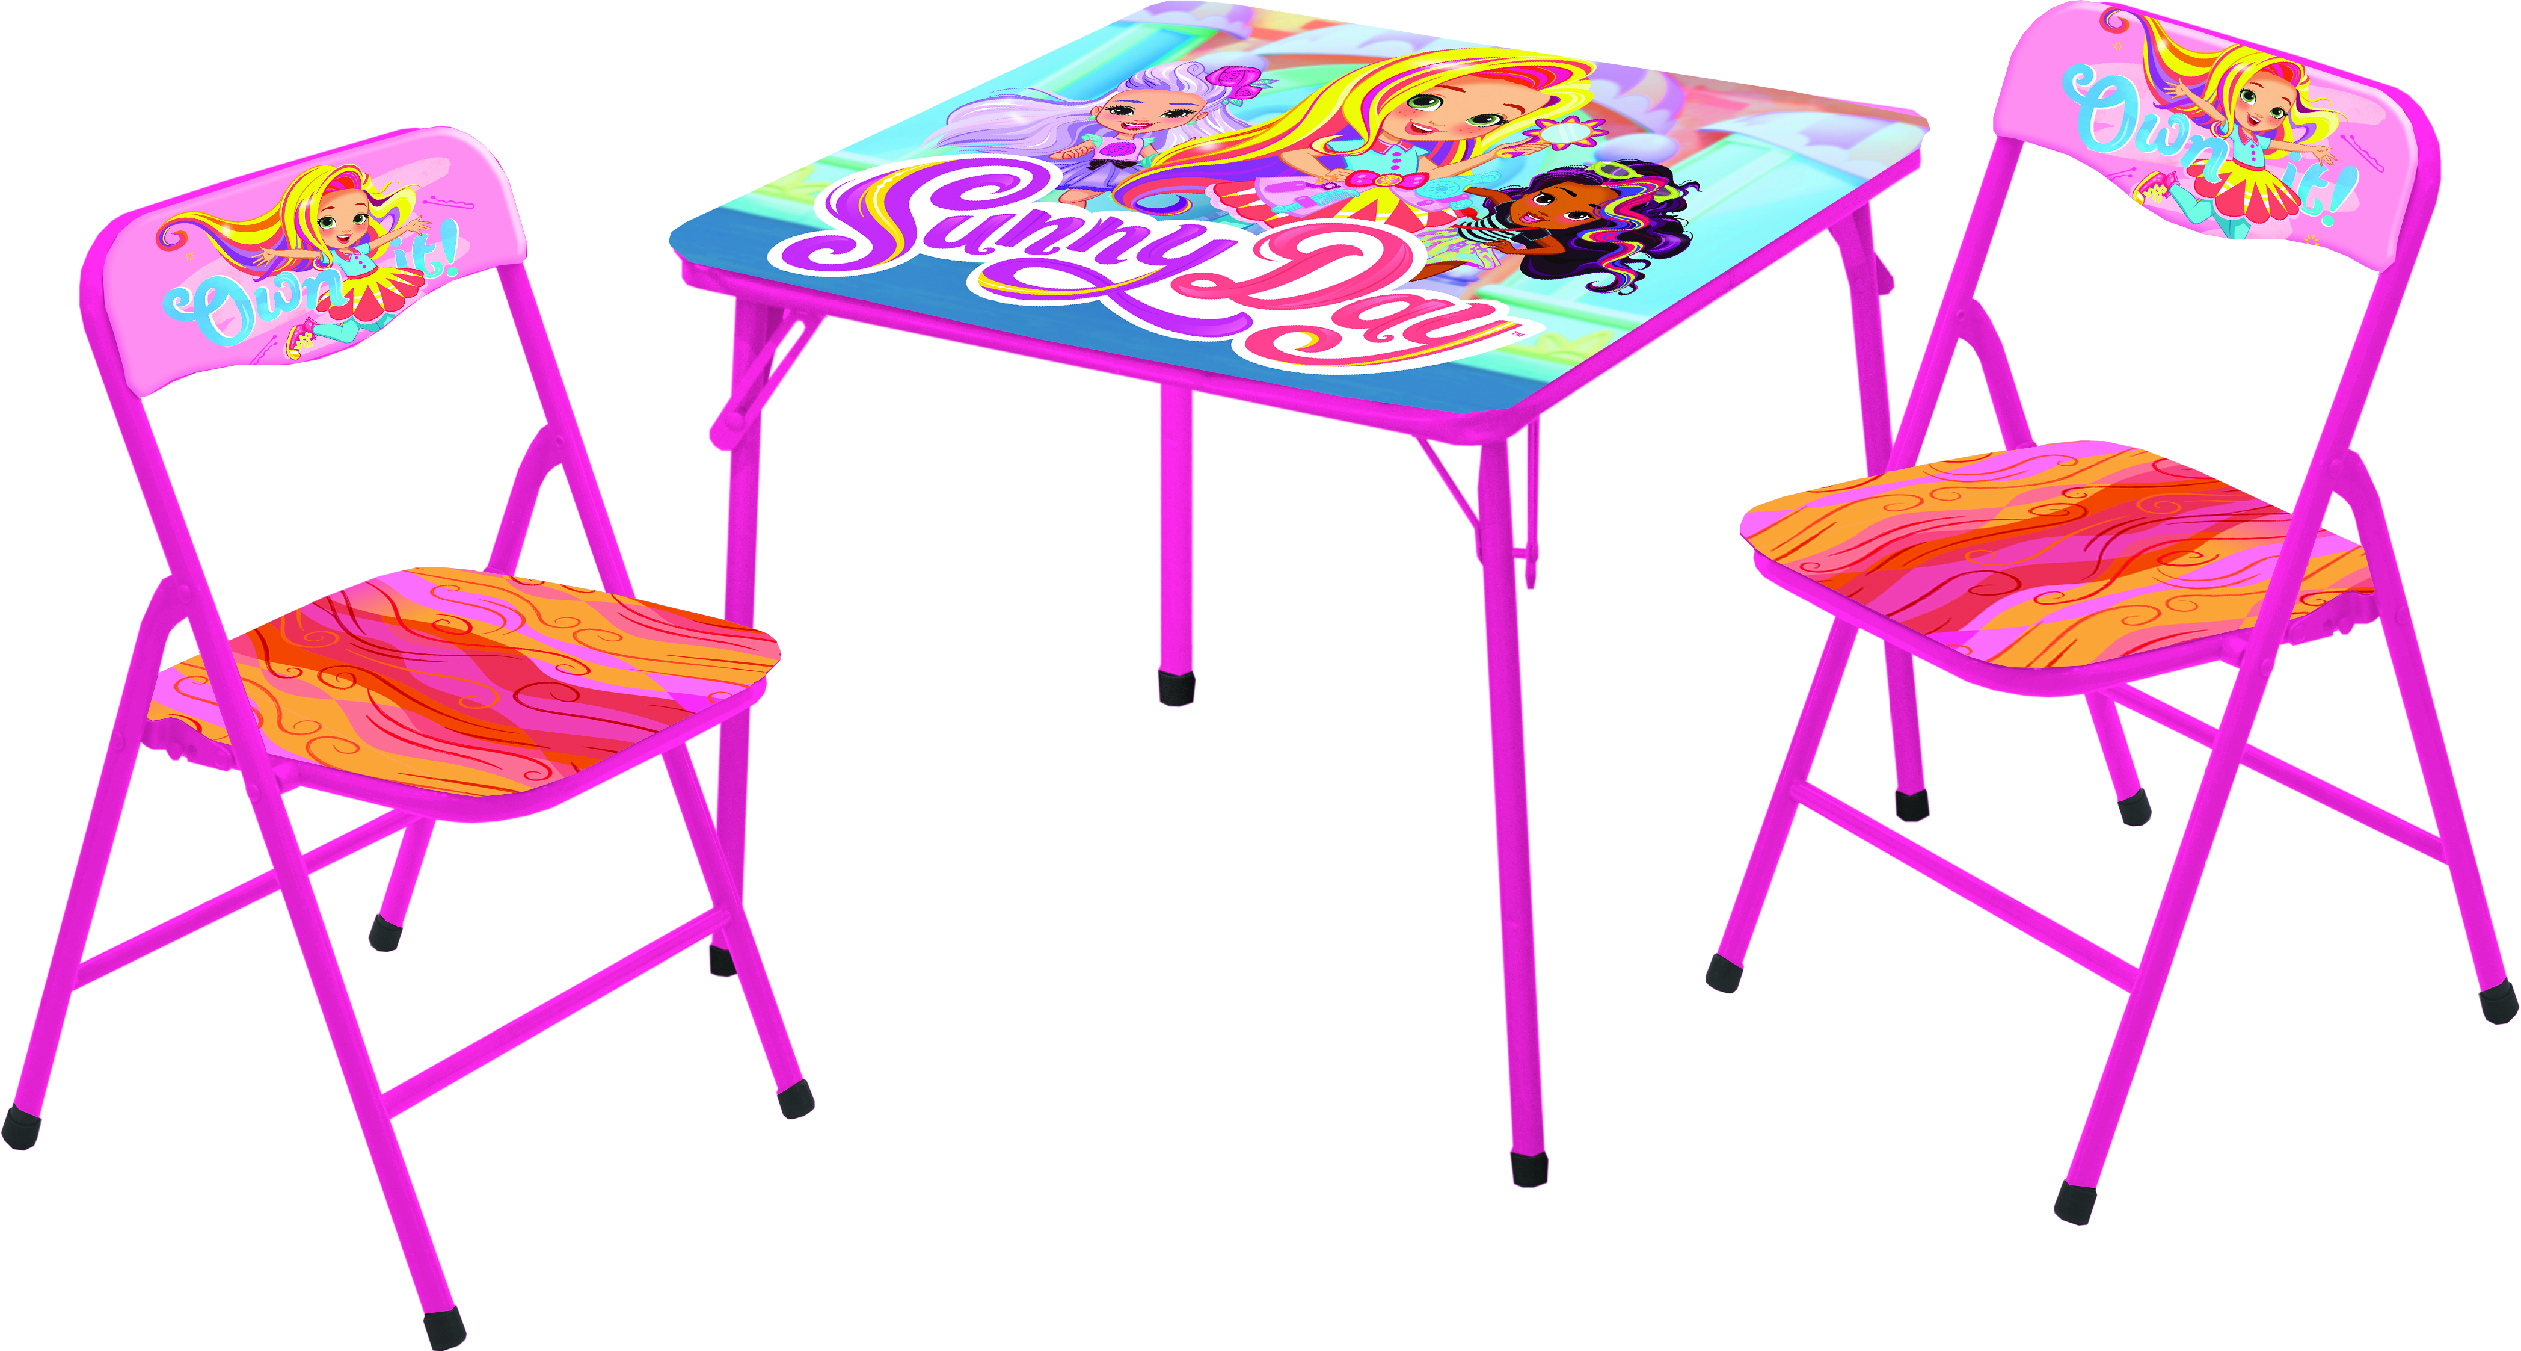 Mint Universal Despicable Me Fluffy The Unicorn 3 PC Table /& Chair Set